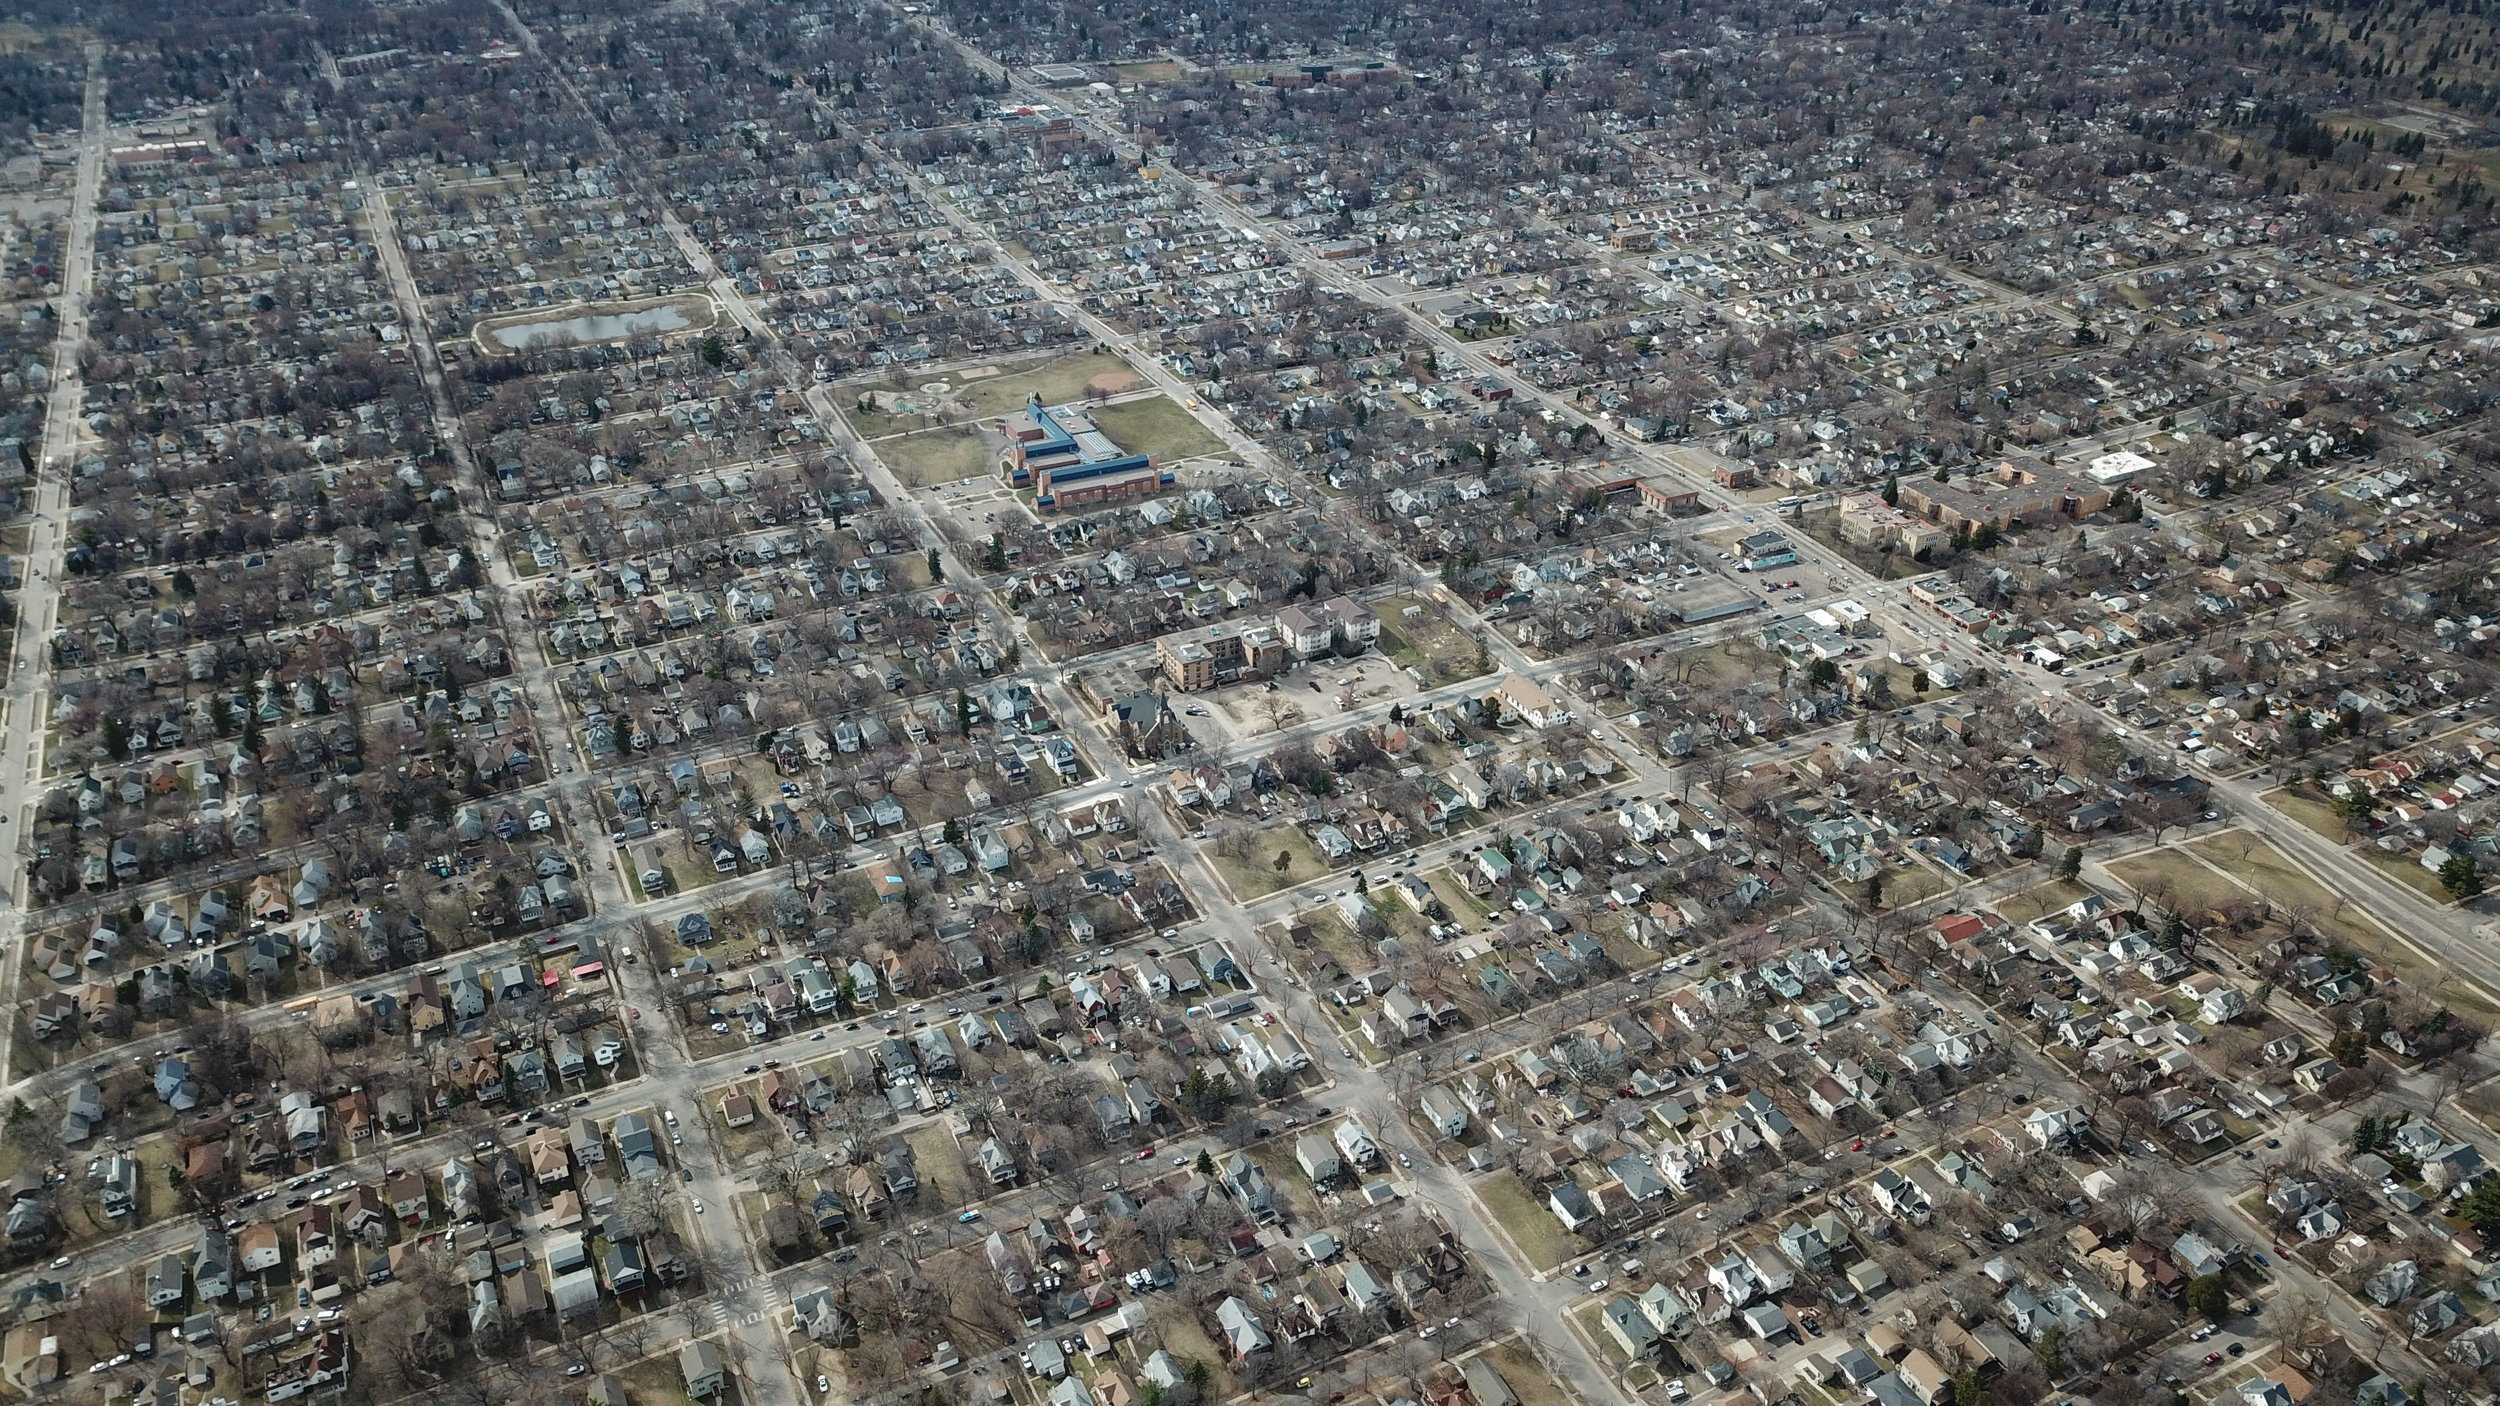 Community members say housing is one of the most urgent issues North Minneapolis residents face.  Photo by Calvin O'Keefe